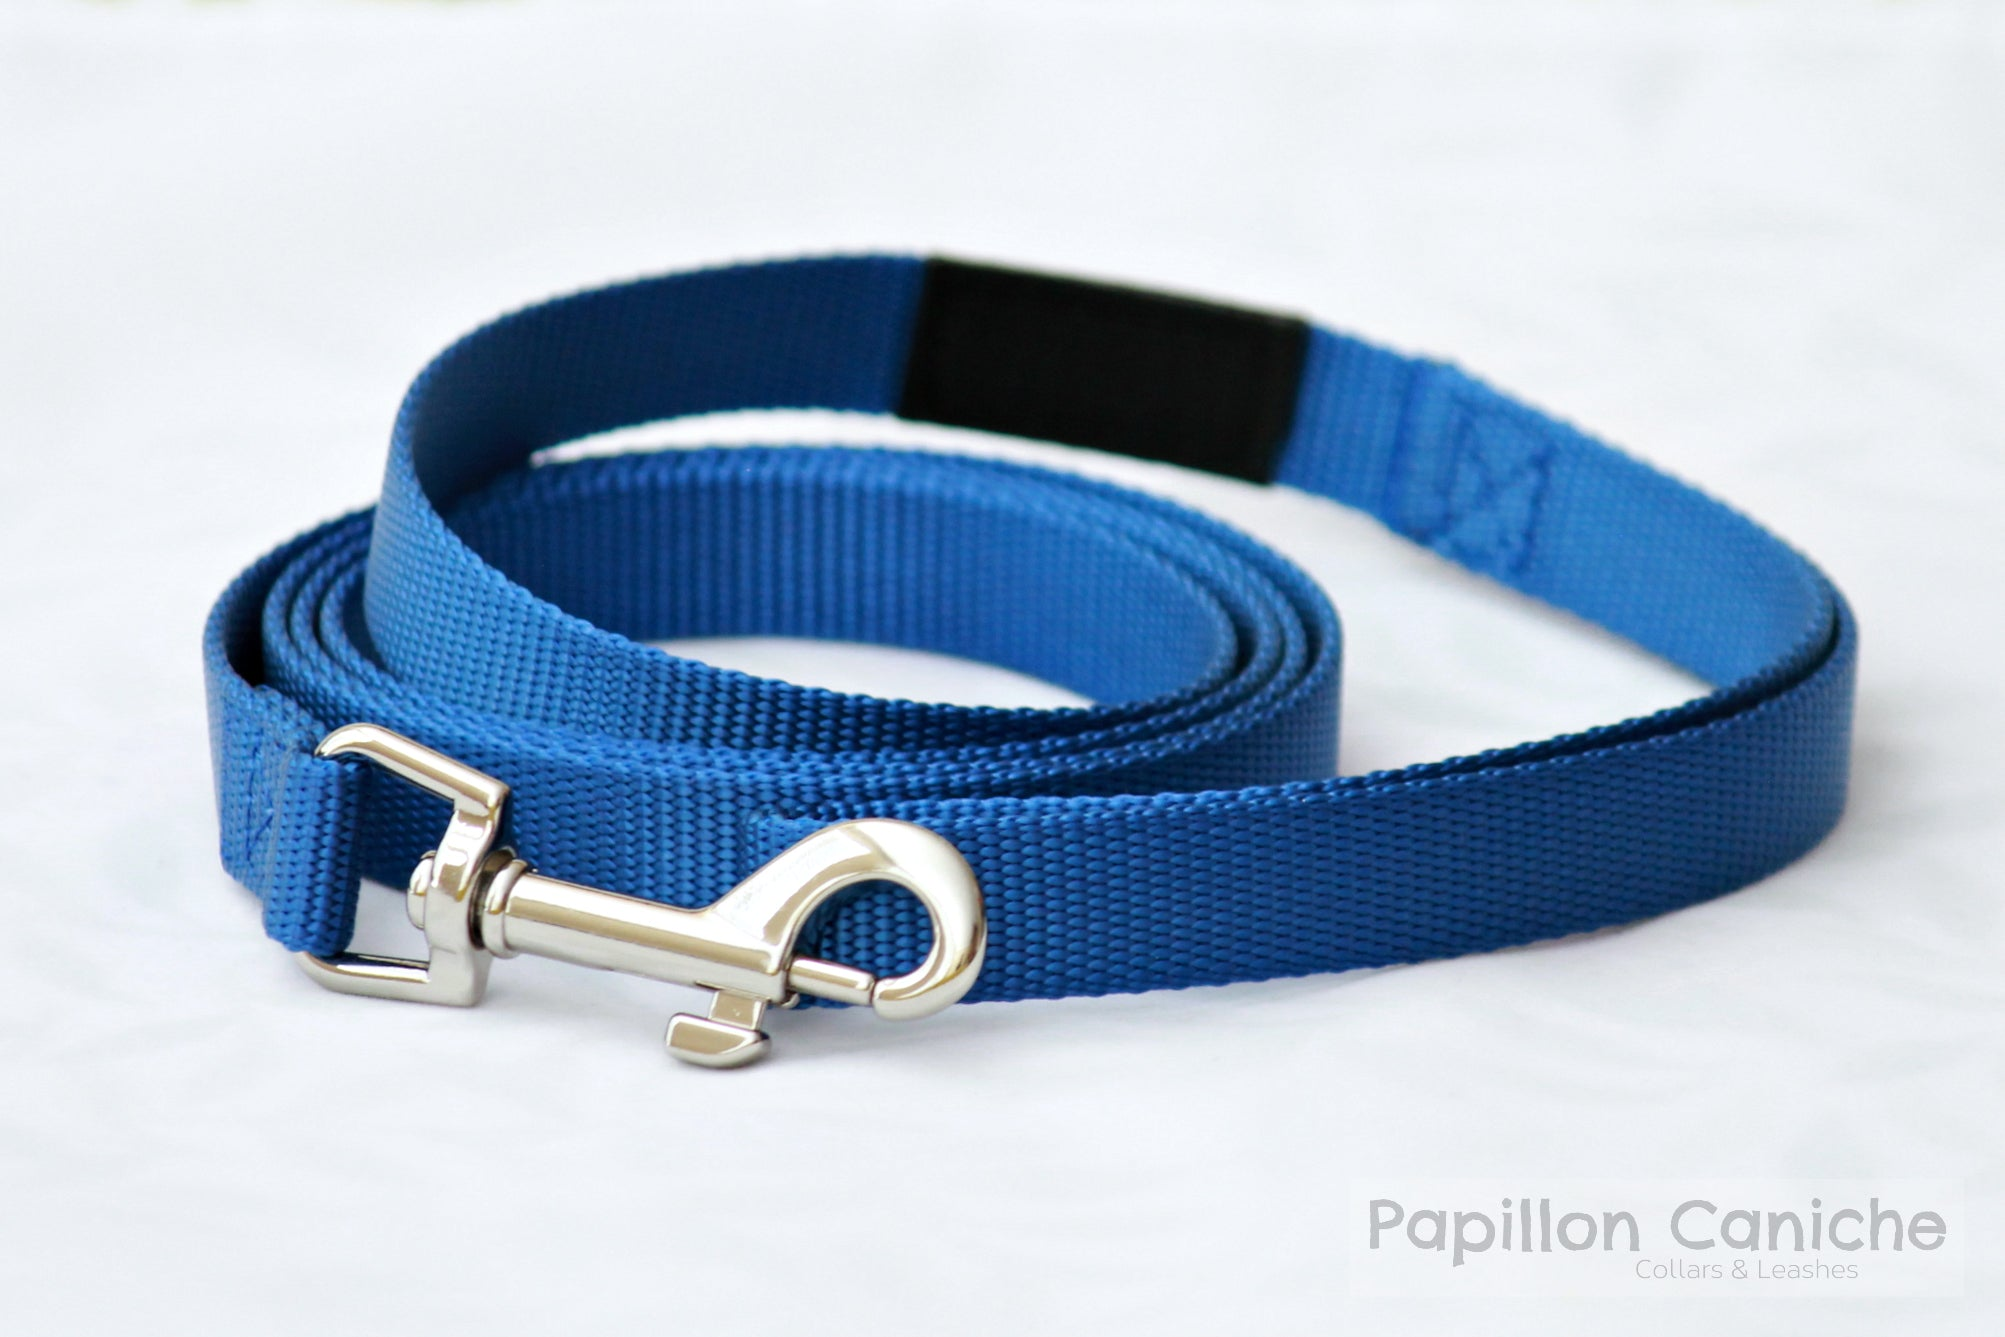 Pack of 10 Kerry Blue Nylon Dog Leash by Papillon Caniche